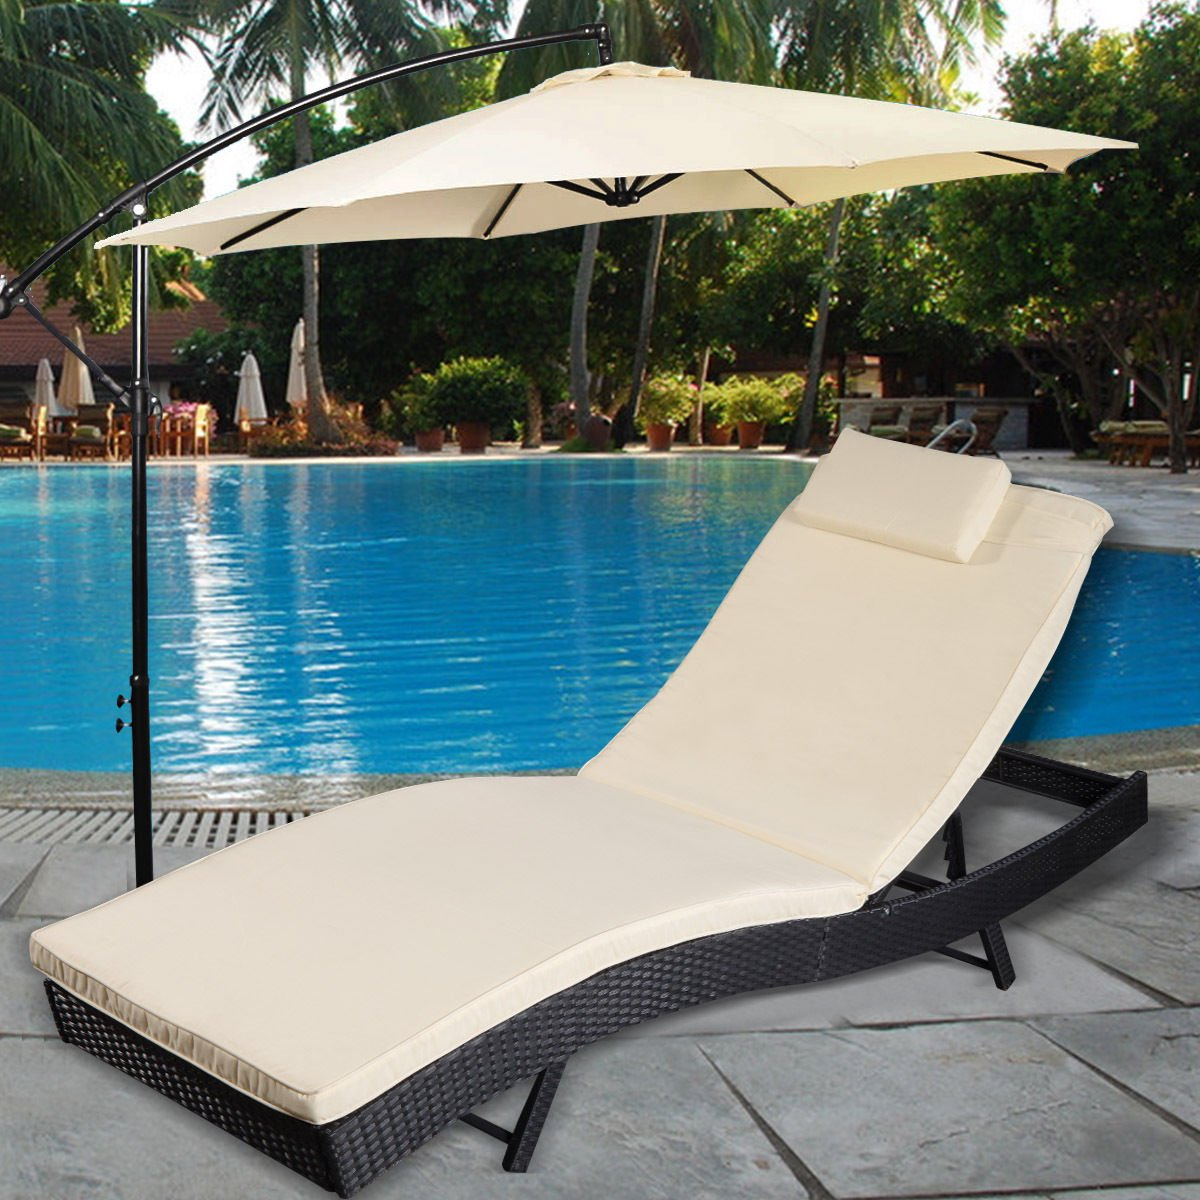 goplus adjustable pool chaise lounge chair outdoor patio furniture pe wicker wcushion